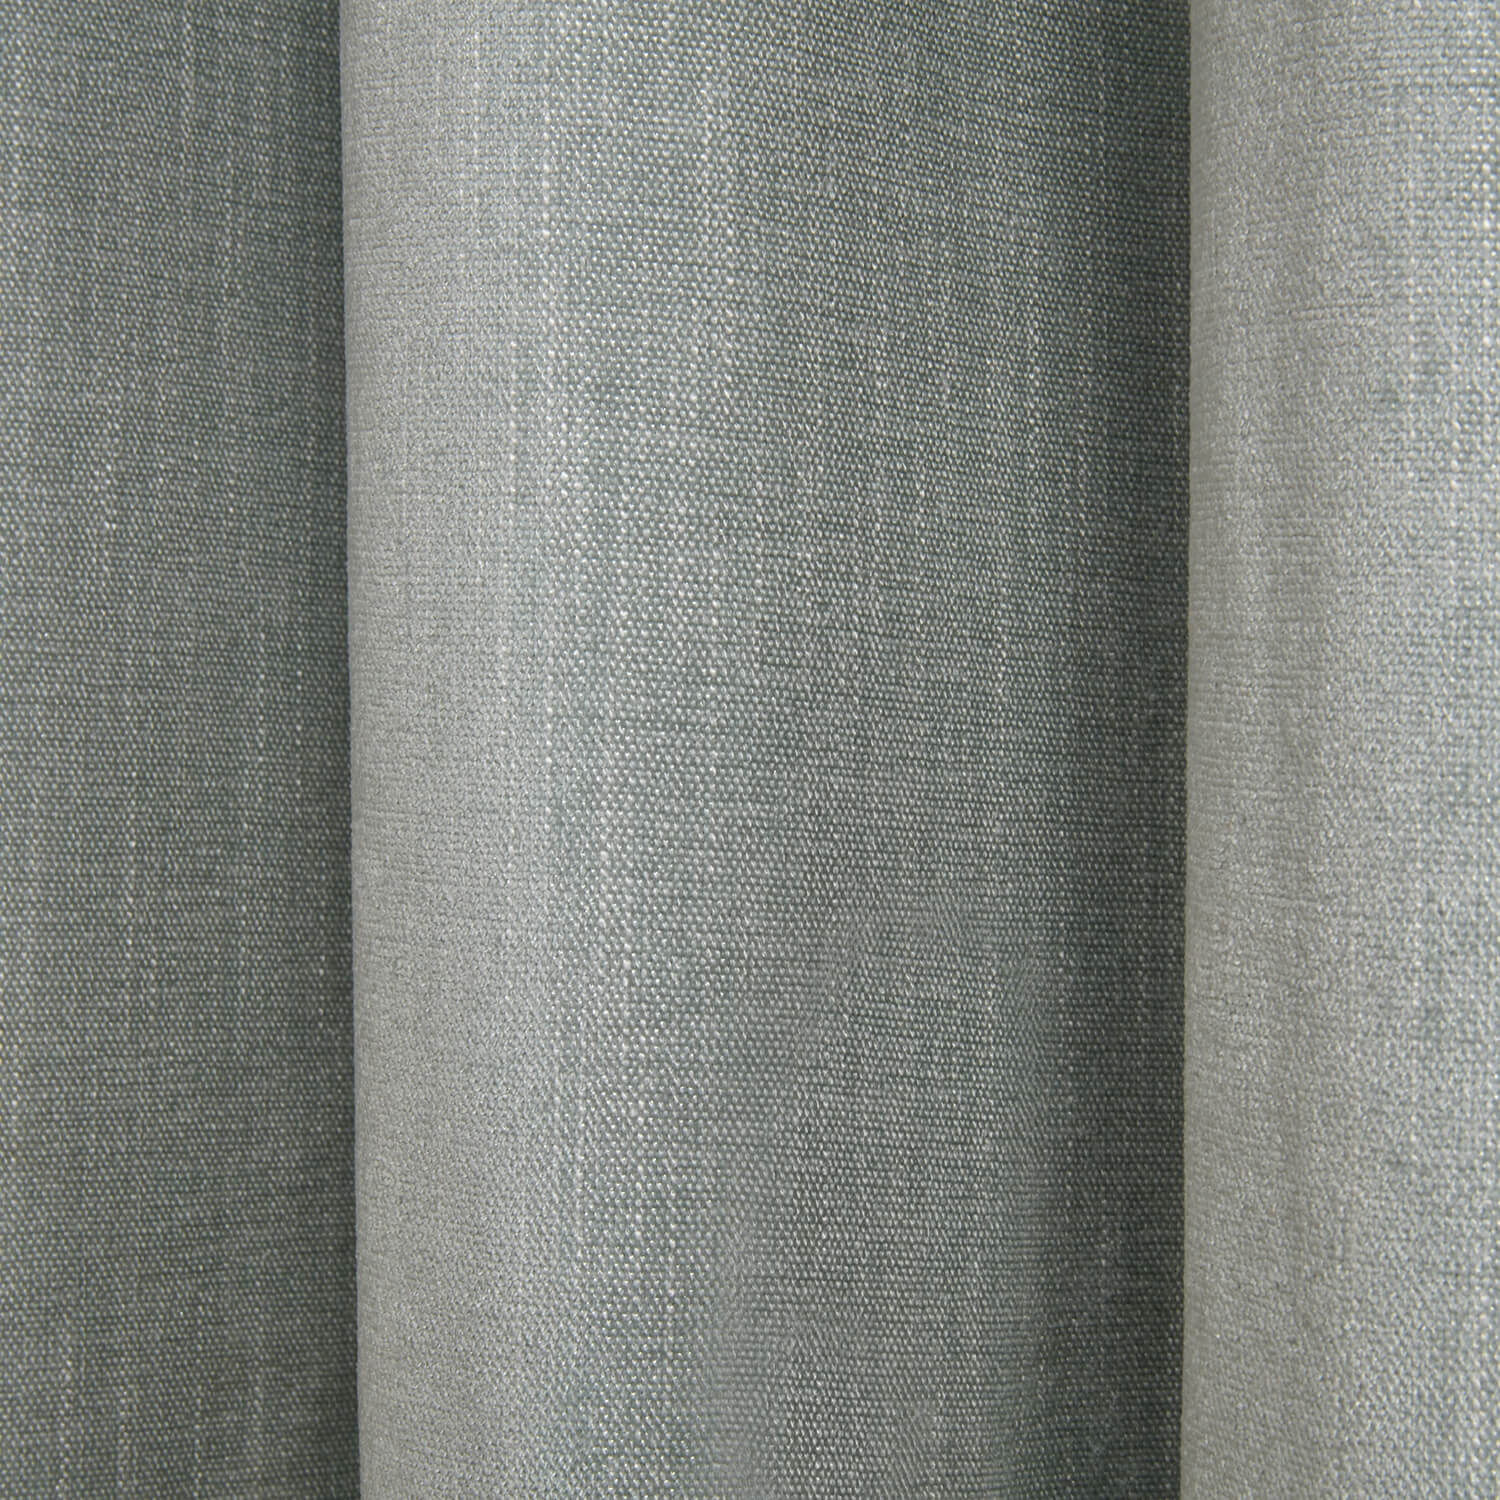 BLACKOUT & THERMAL METALLIC DUCK EGG 66x54 Curtain